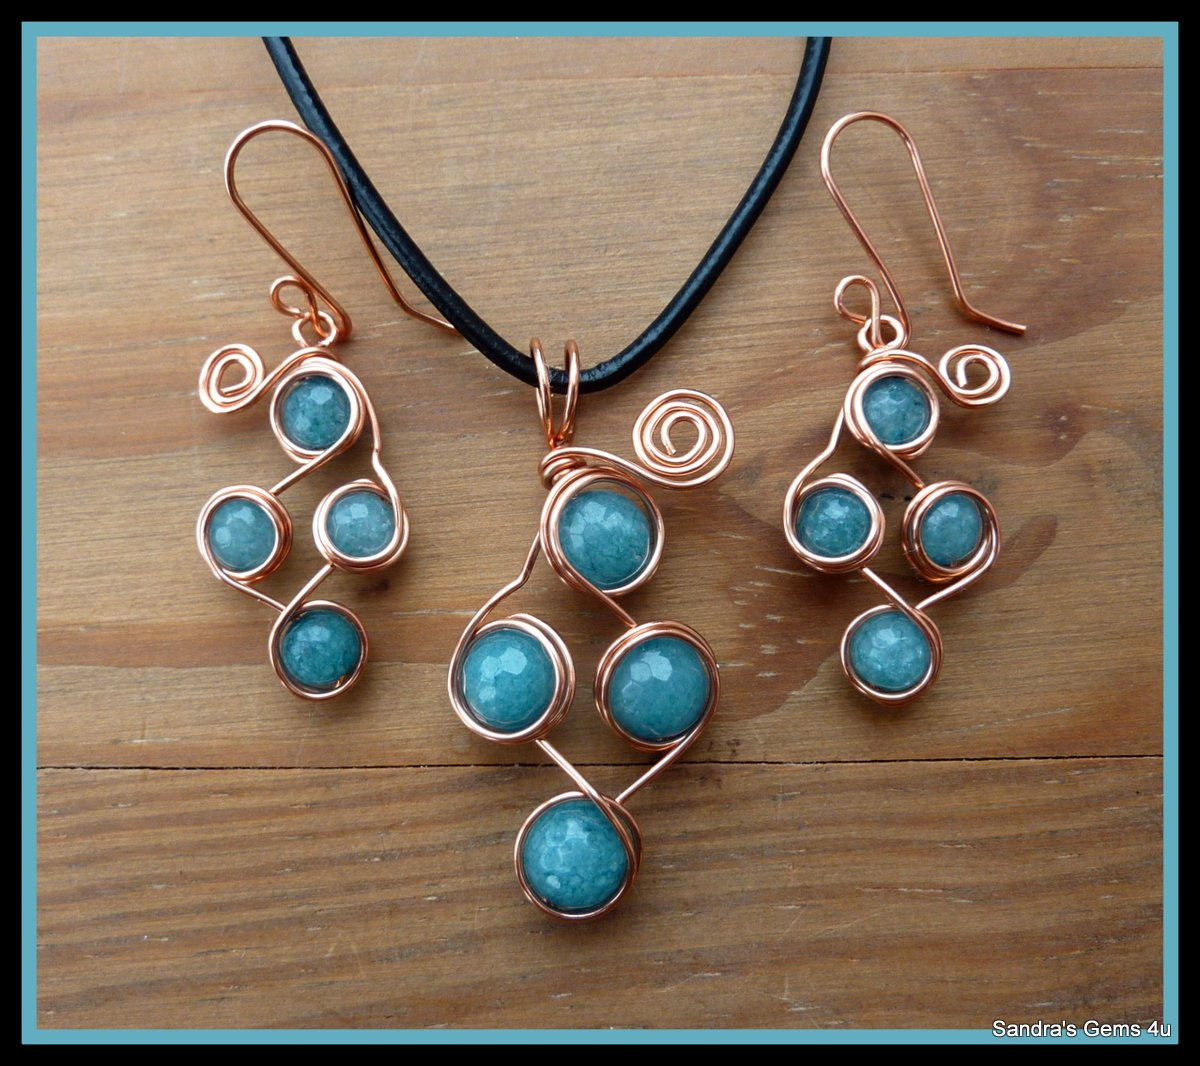 Aquamarine Pendant, wire wrapped in Copper, March birthstone, matching Earrings available